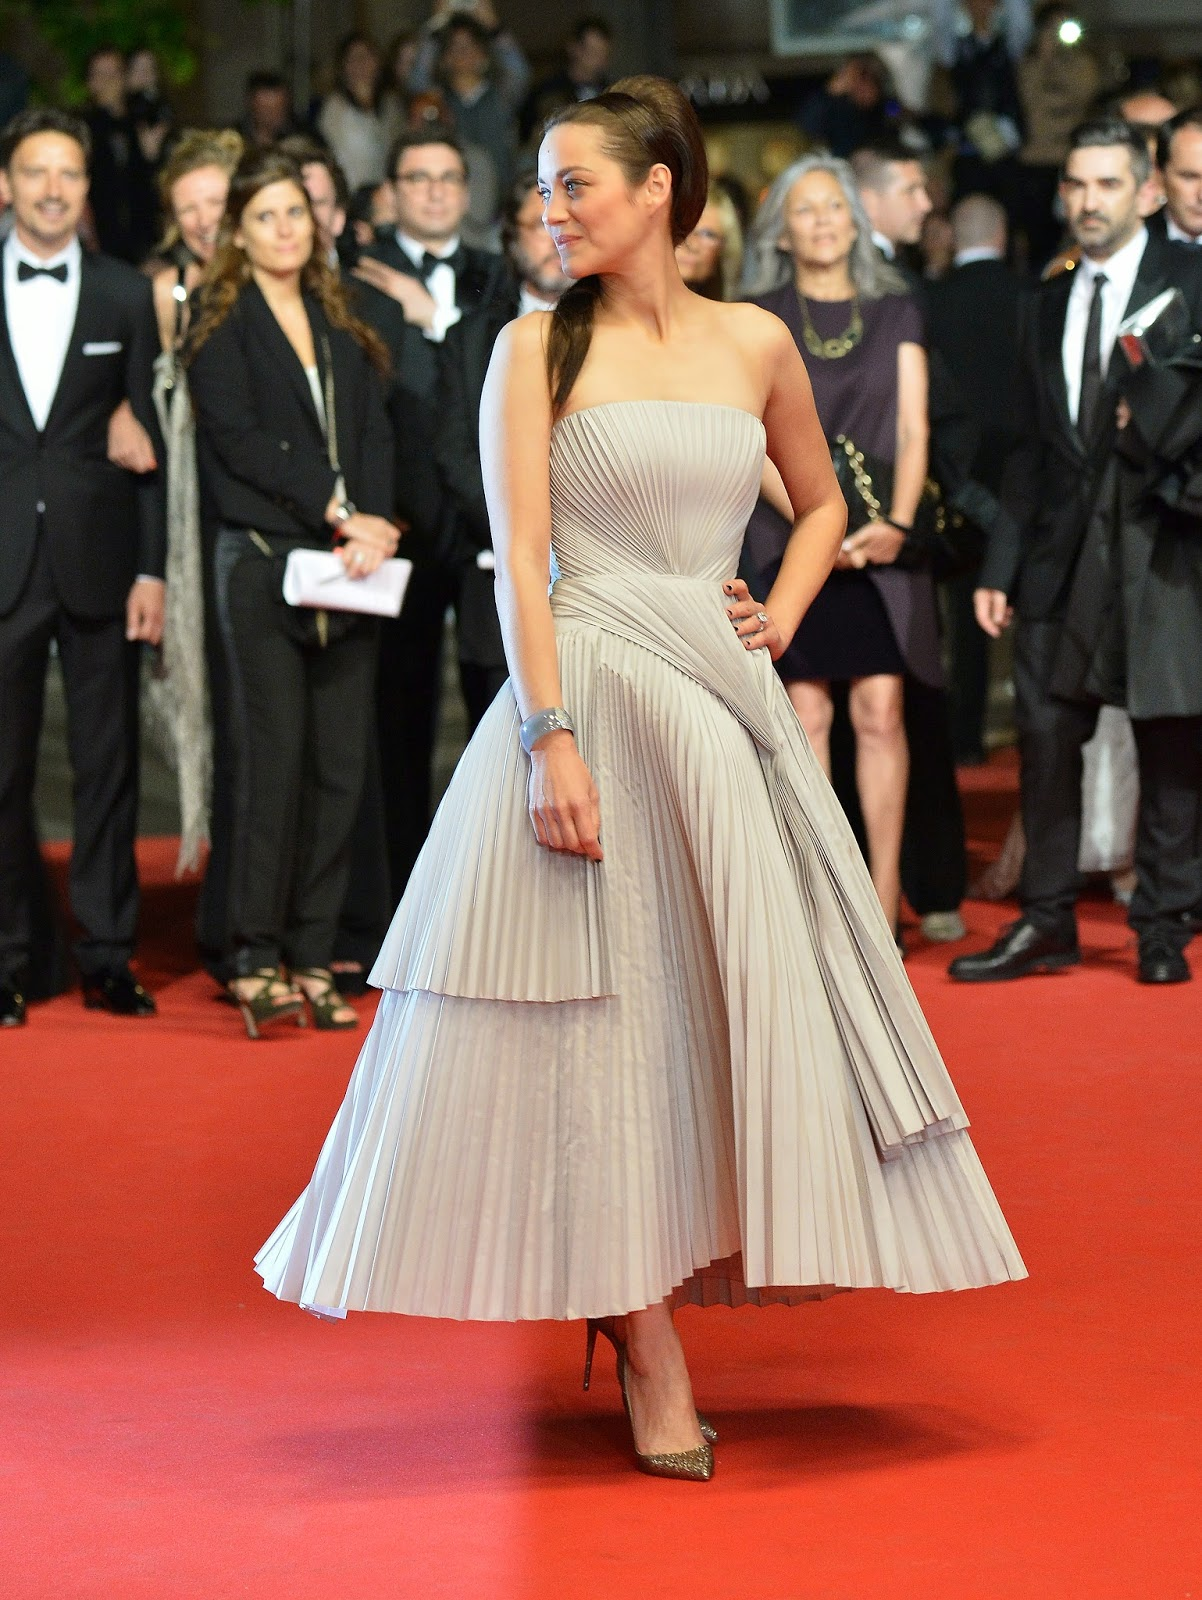 Cannes Film Festival 2014 - Marion Cotillard HD Pictures & Wallpapers